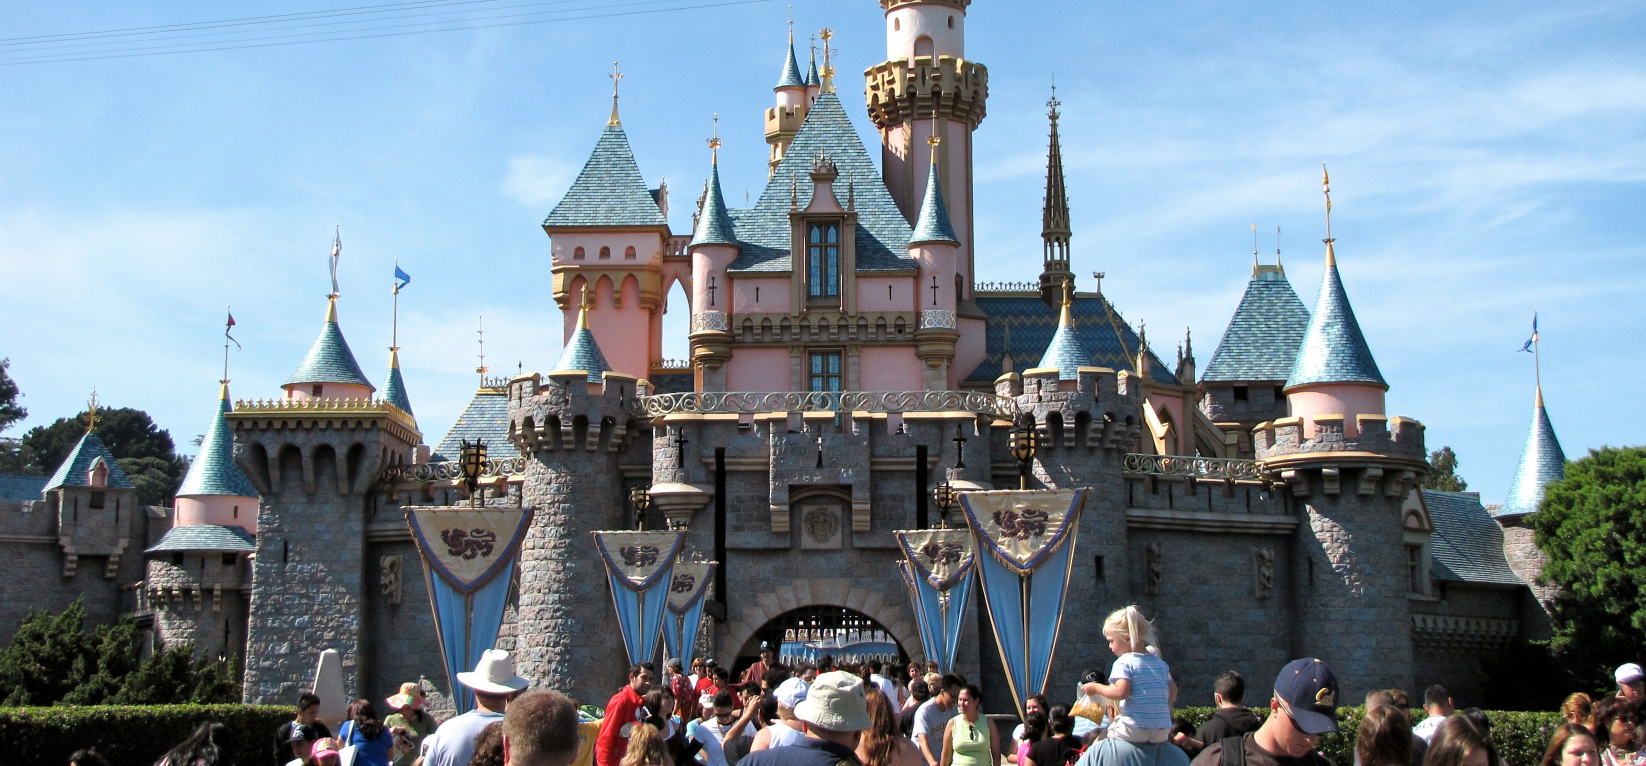 SleepingBeautyCastle.JPG (3607×2312) 2015-08-04 10-33-31